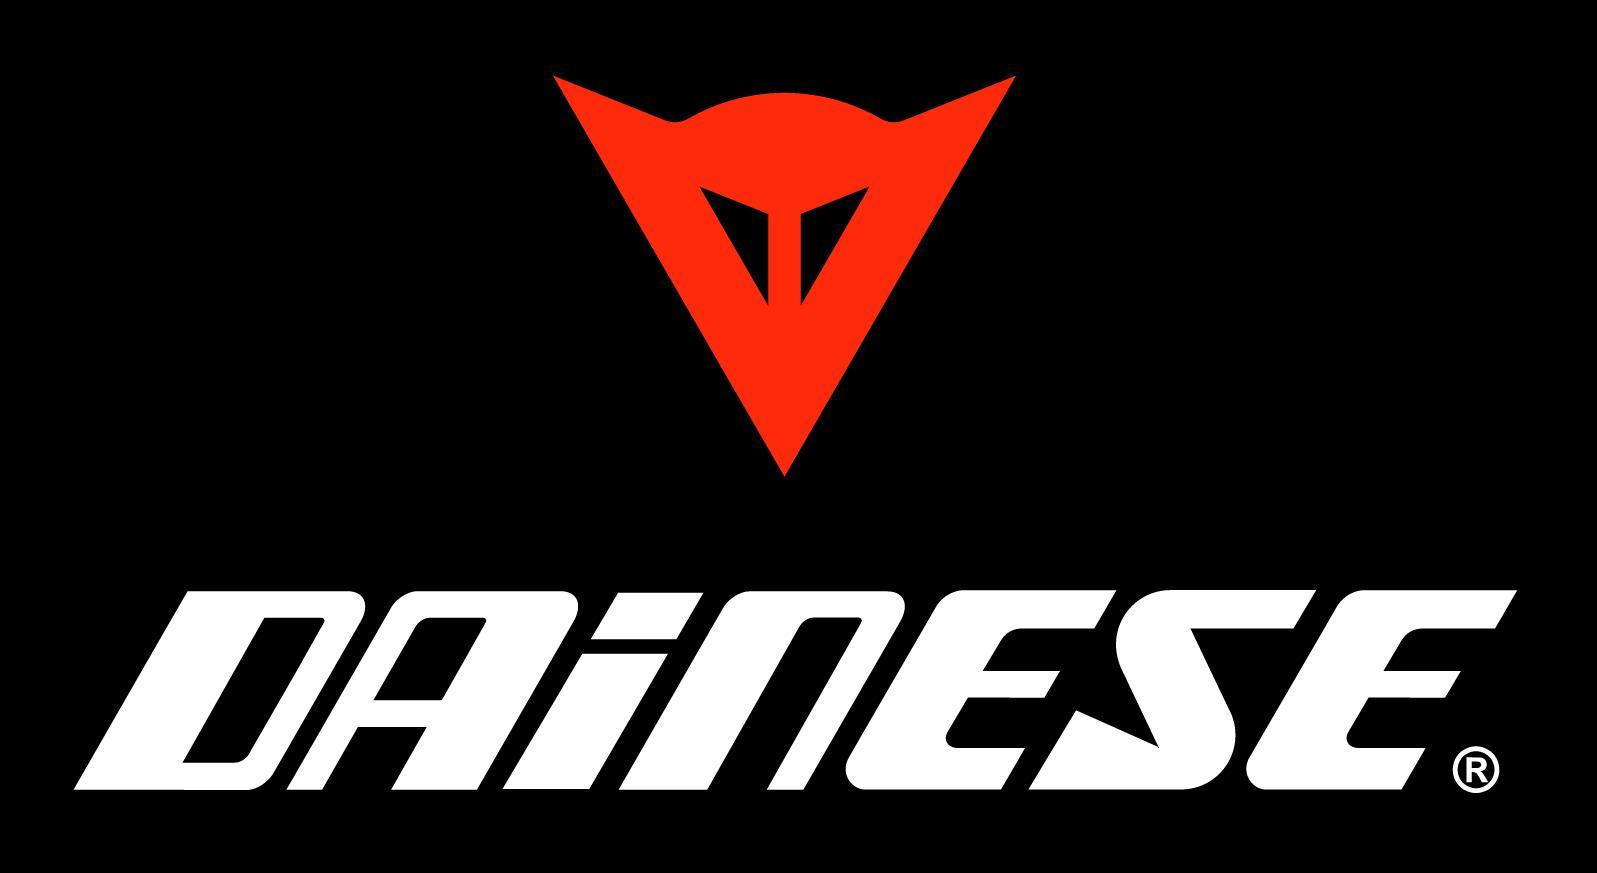 Check out DAINESE e-Store on egybikers.com